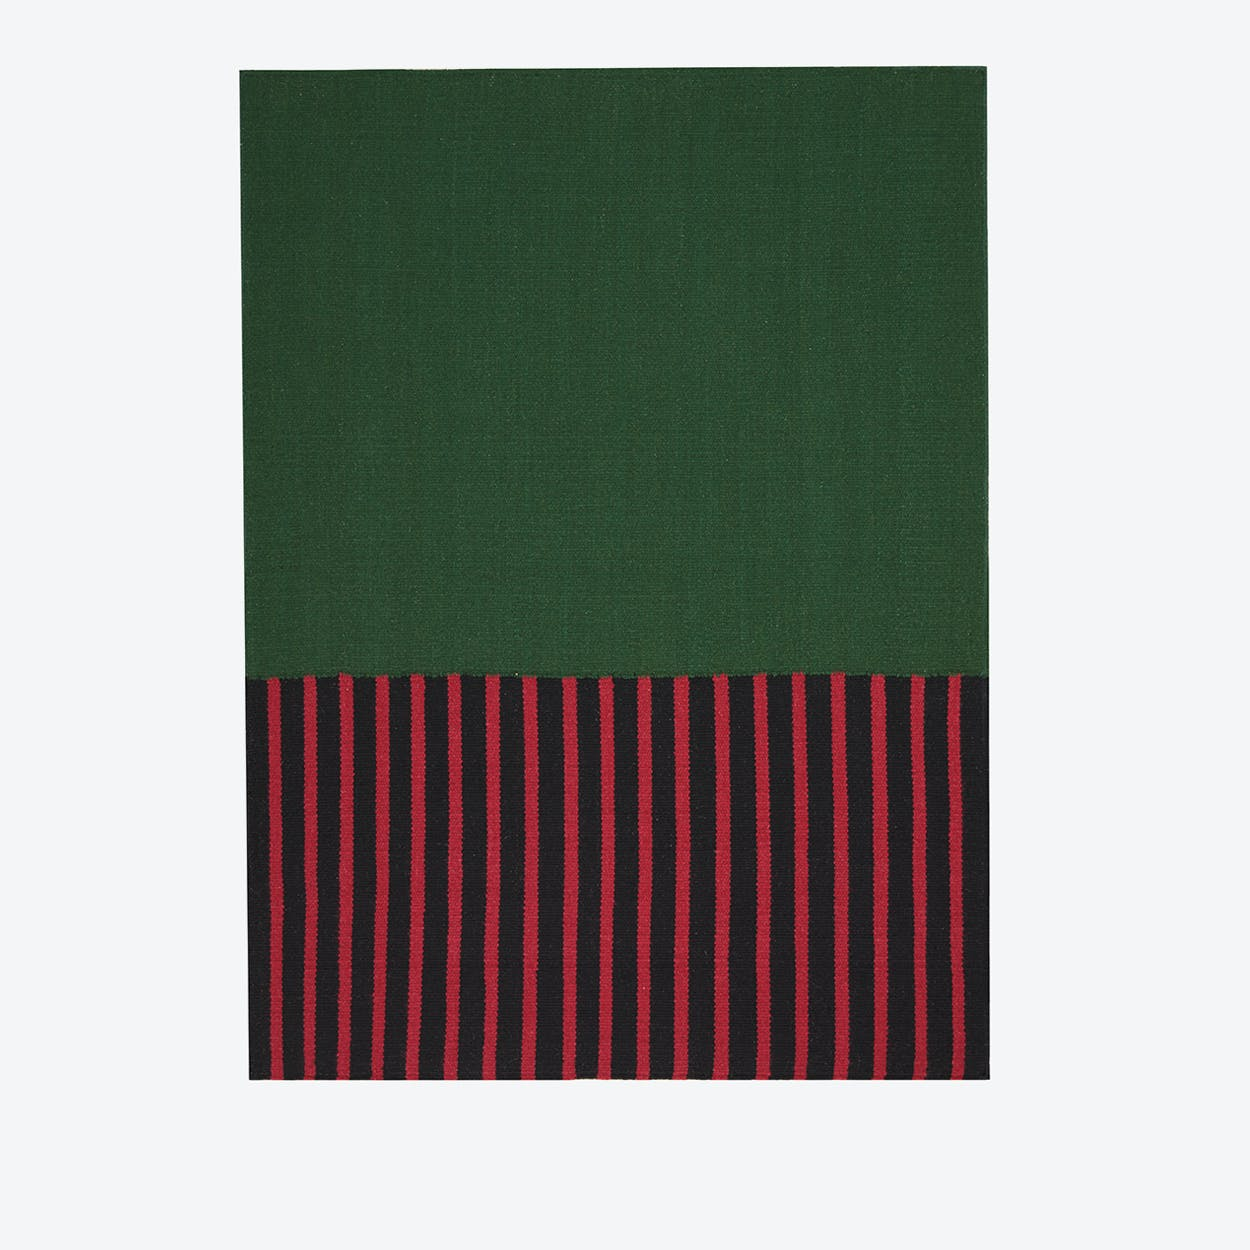 NASHVILLE  Rug in Hunter Green, Magenta & Black